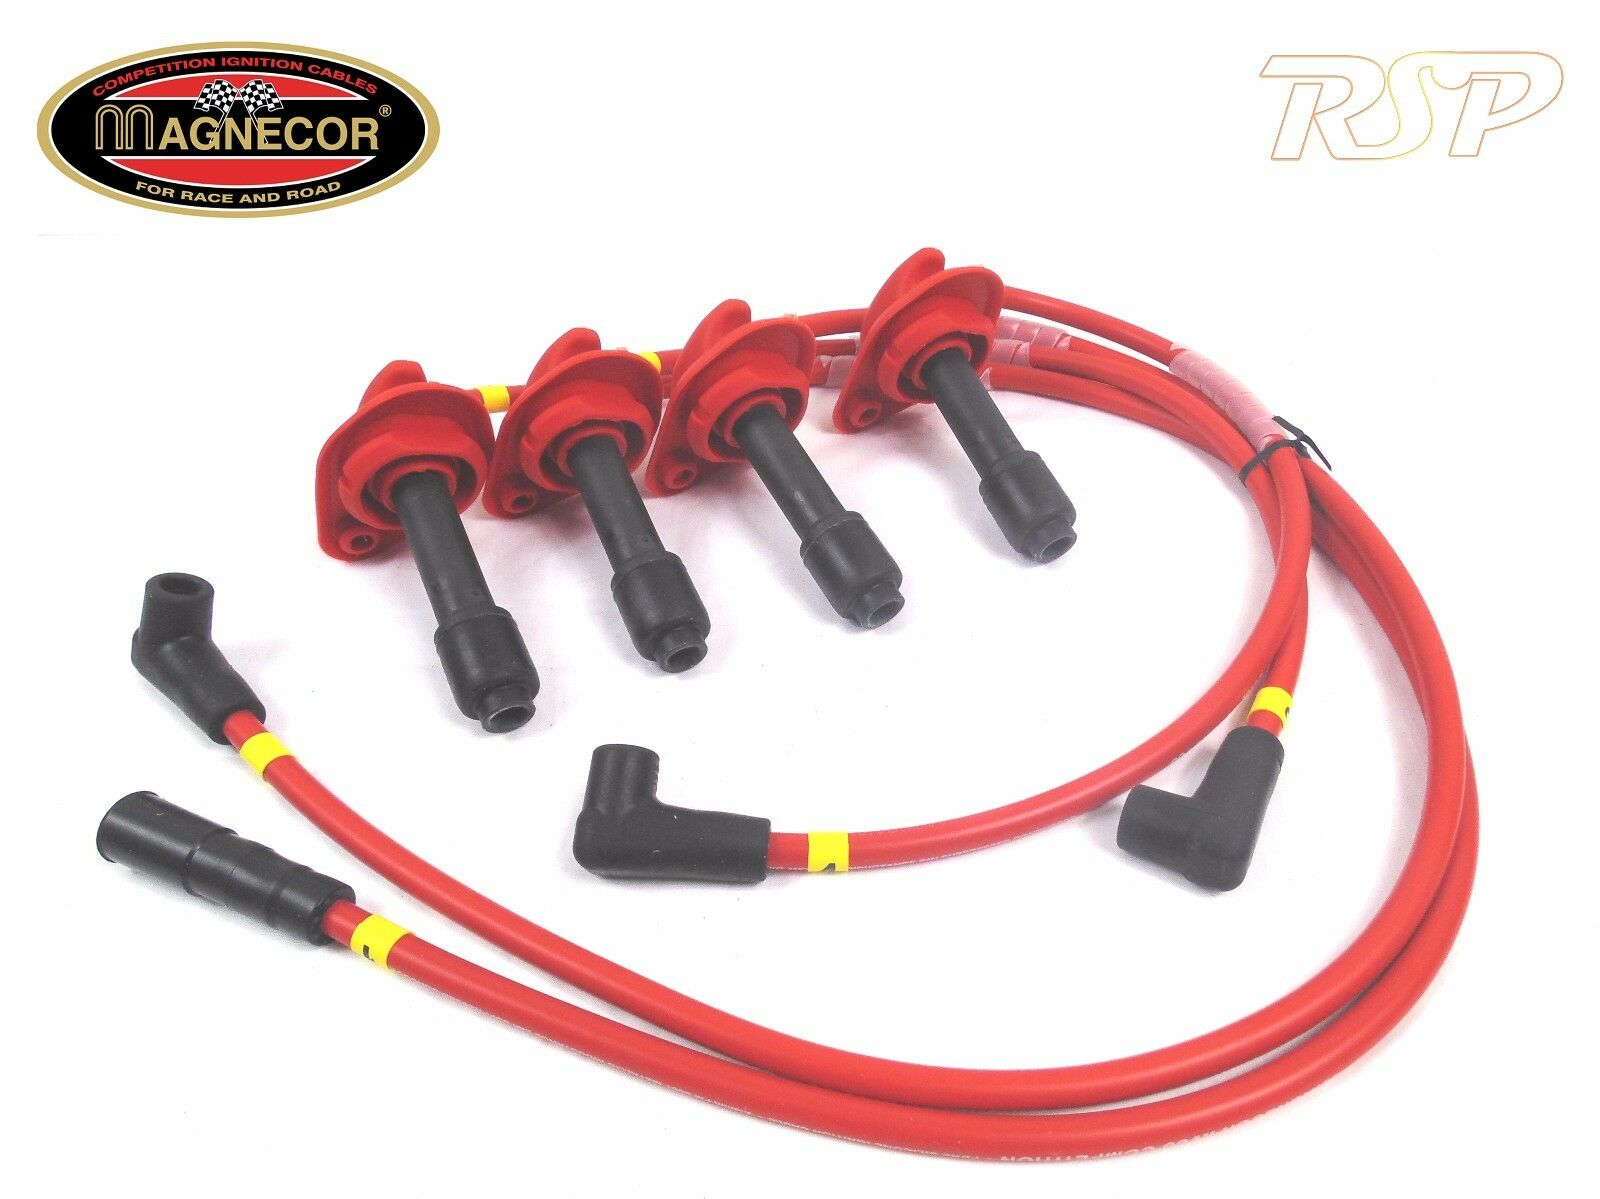 Magnecor Kv85 Ignition Ht Lead Set Forester Impreza Turbo 2000 Jdm Subaru Spark Plug Wires Wrx Sti V5 1 Of 2only Available